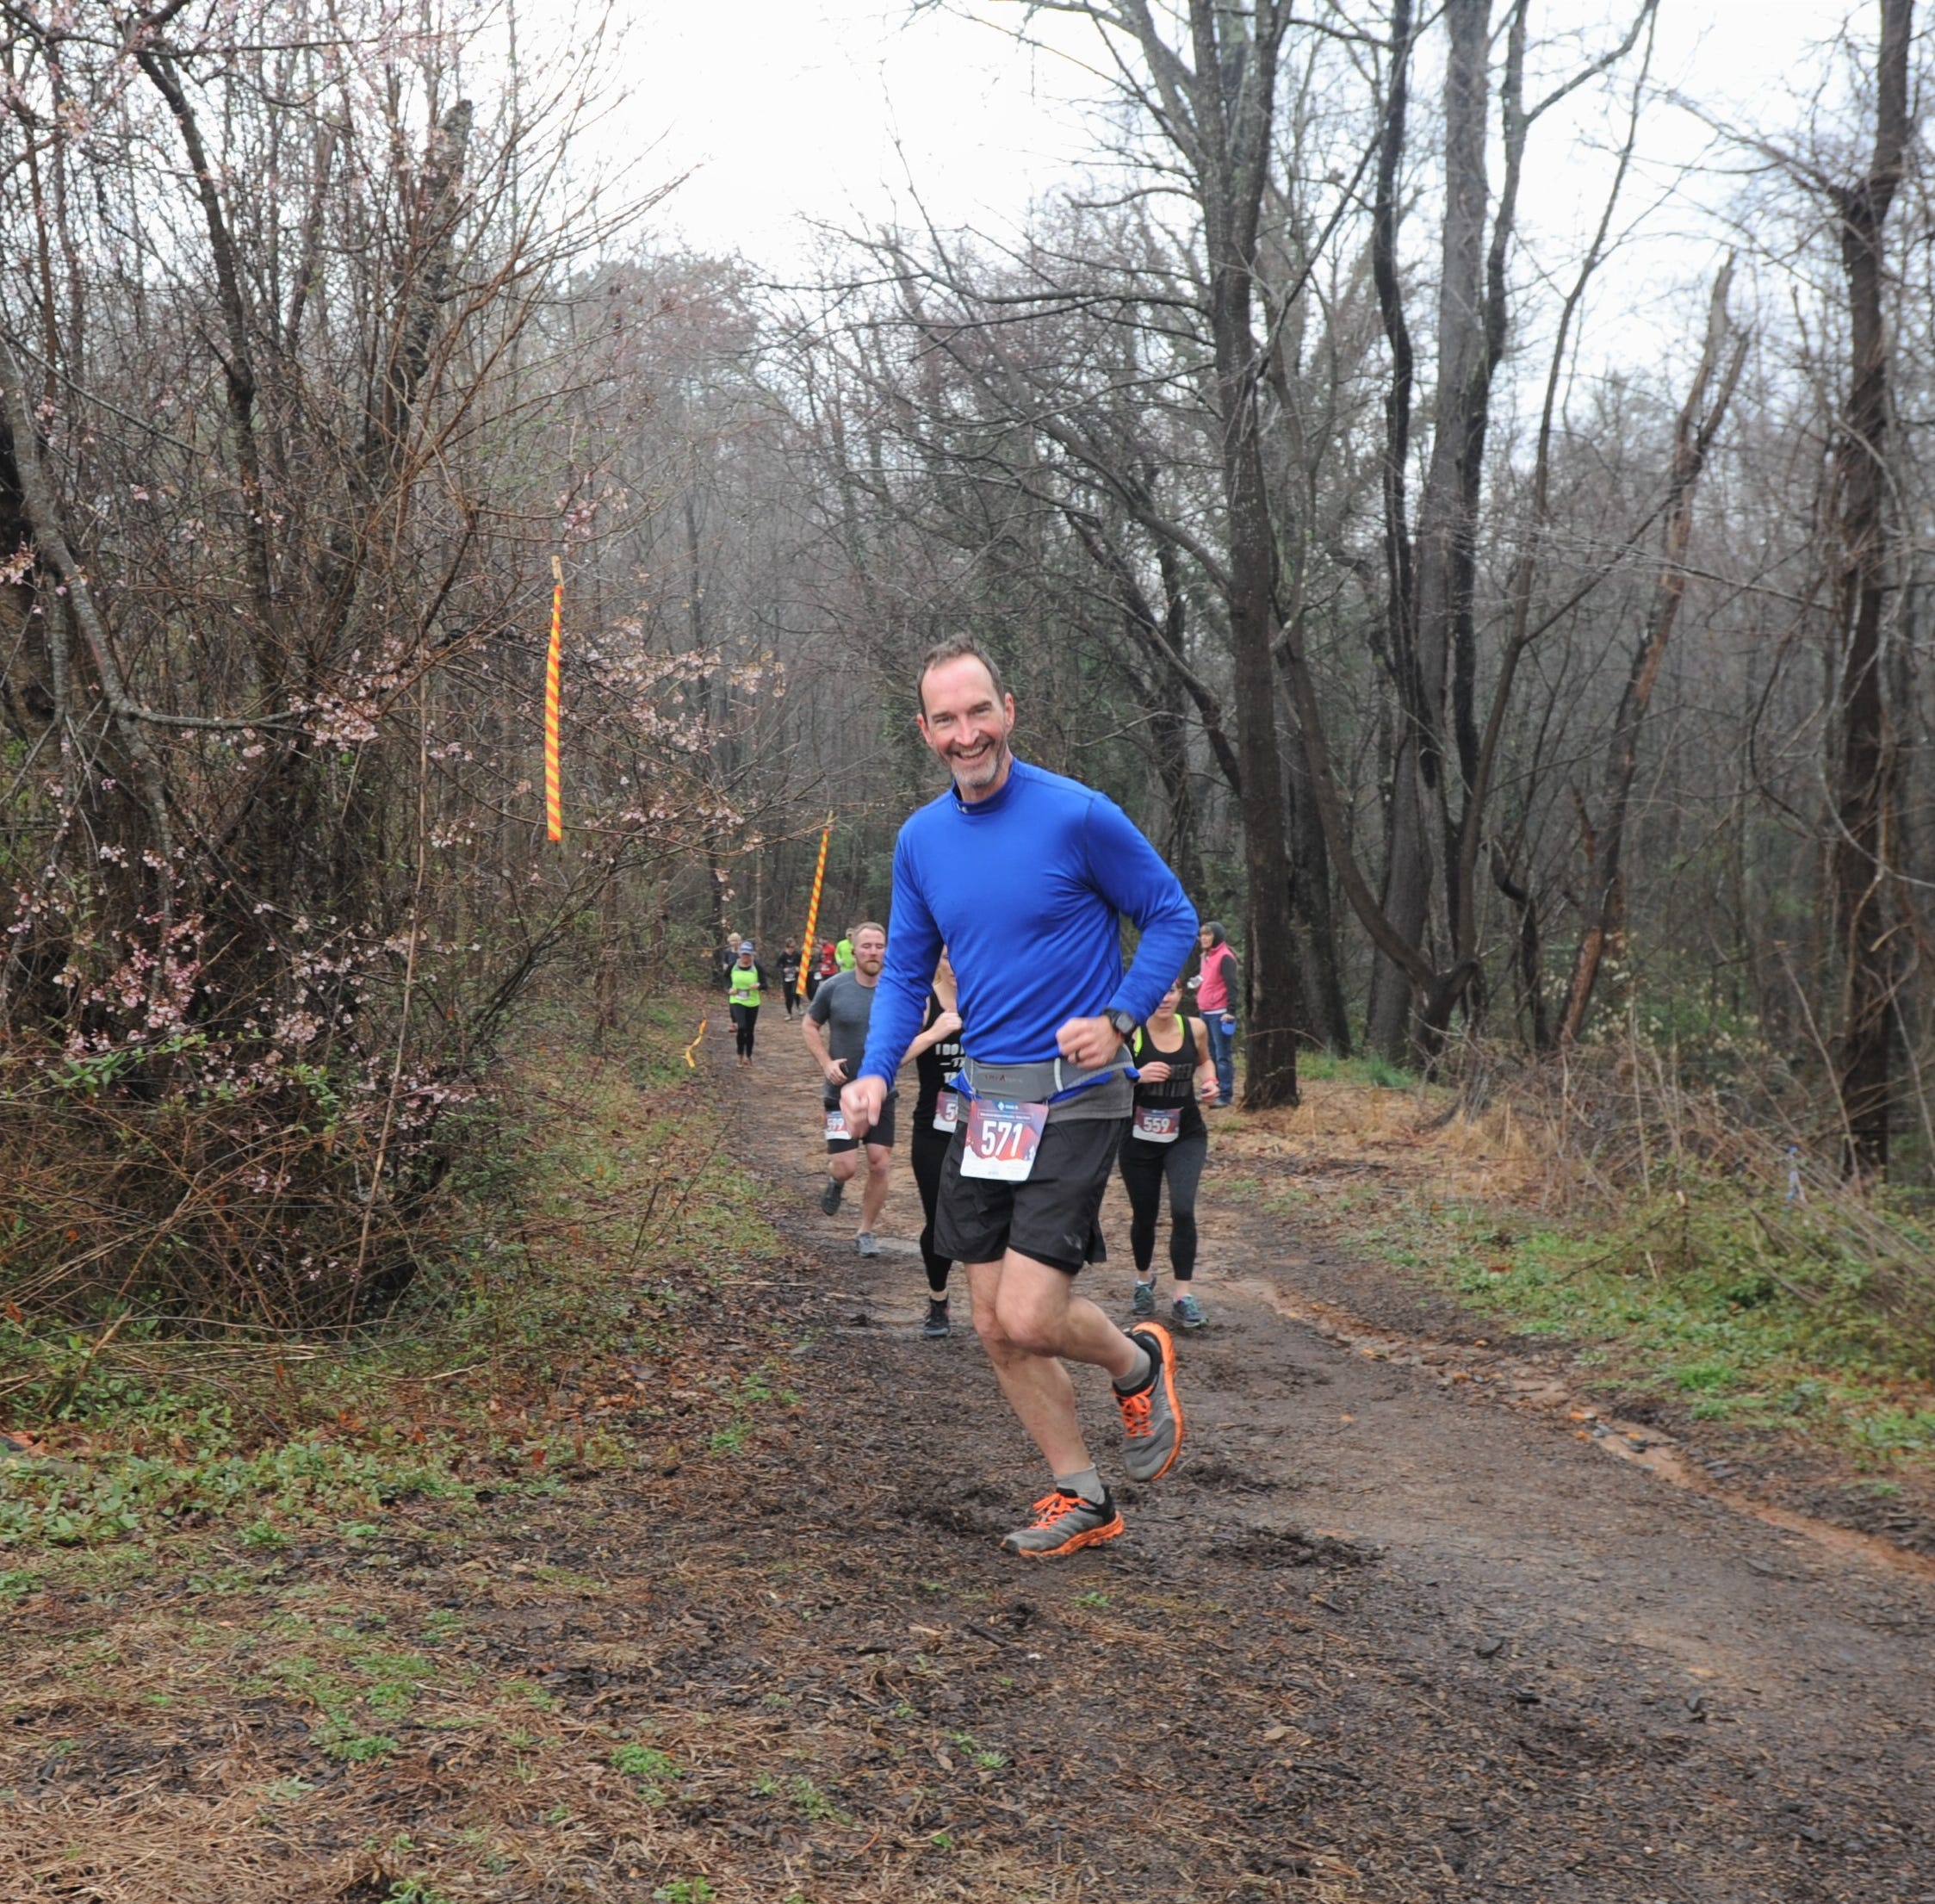 Several races in the area keep the Swannanoa Valley on the run